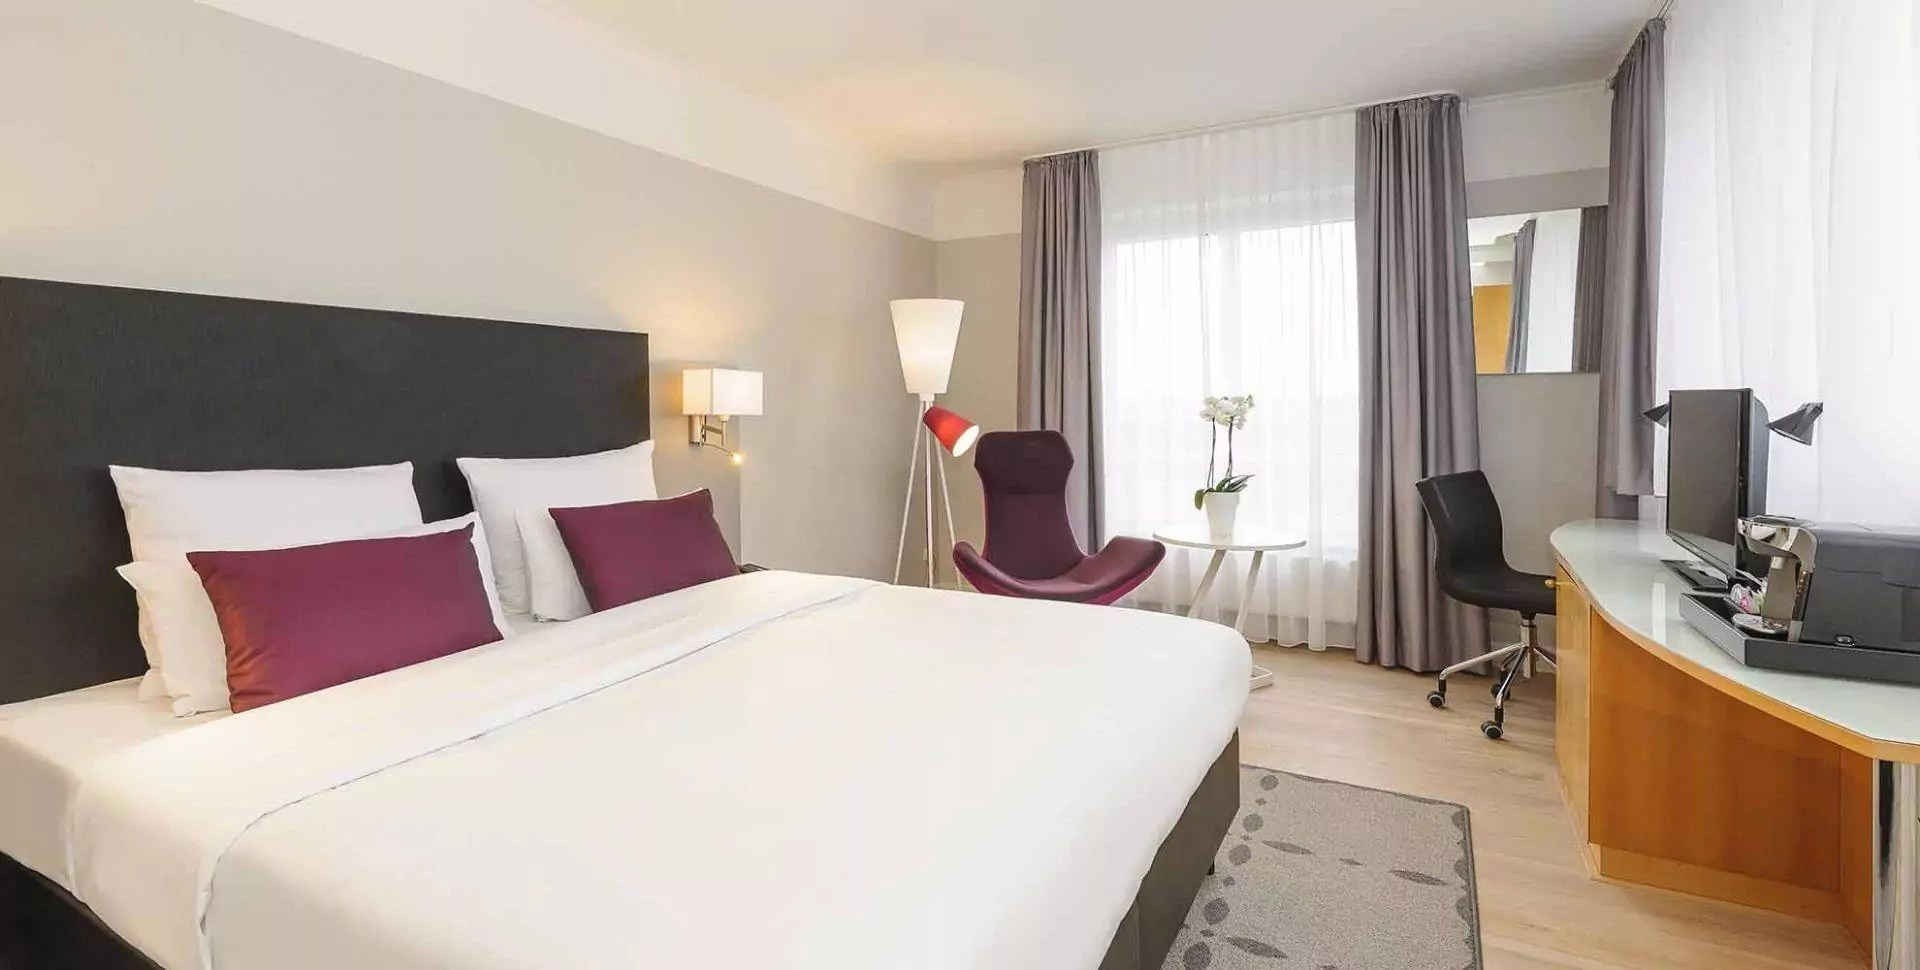 Design Hotel Hannover Privilege Room Mercure Hotel Hanover Oldenburger Allee